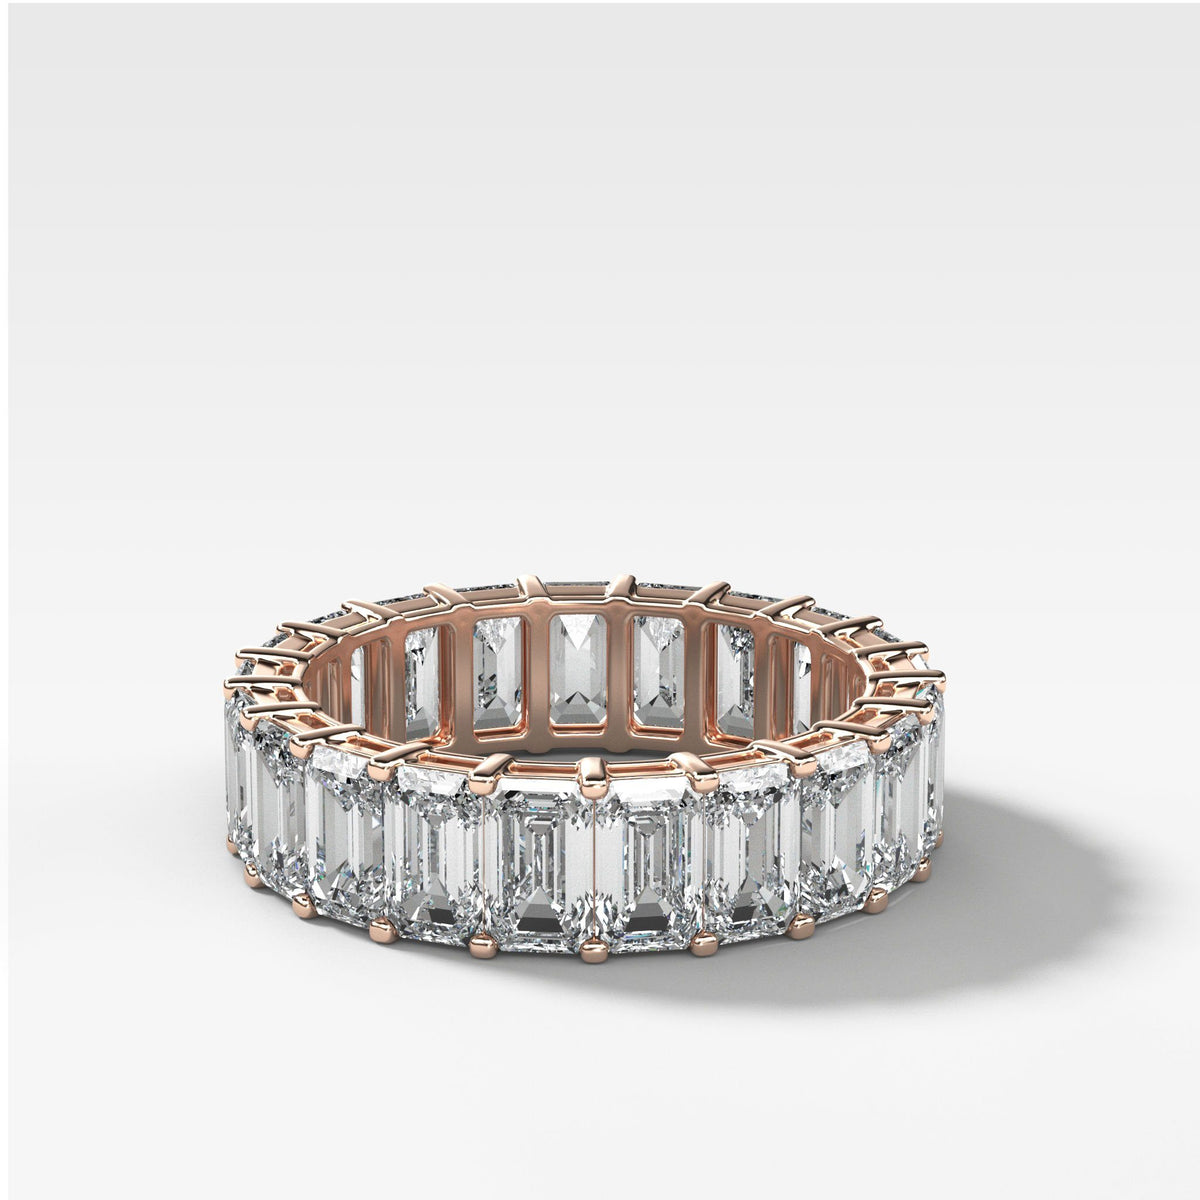 Emerald Cut Constellation Eternity Band available in Rose Gold by Good Stone